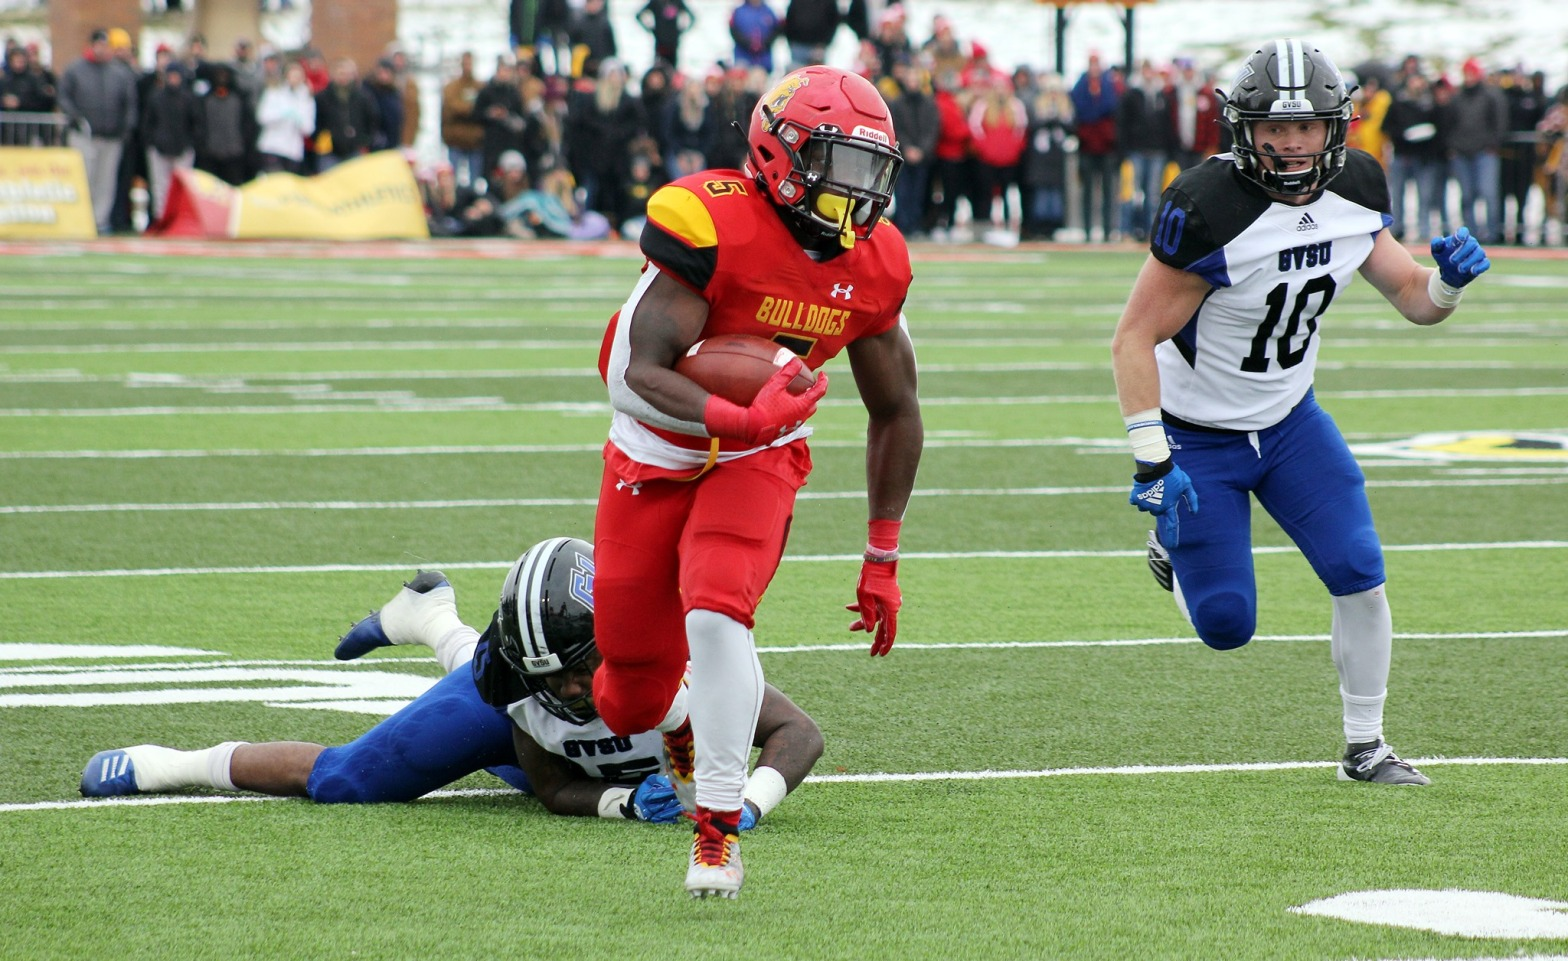 Marvin Campbell, Ferris State Bulldogs